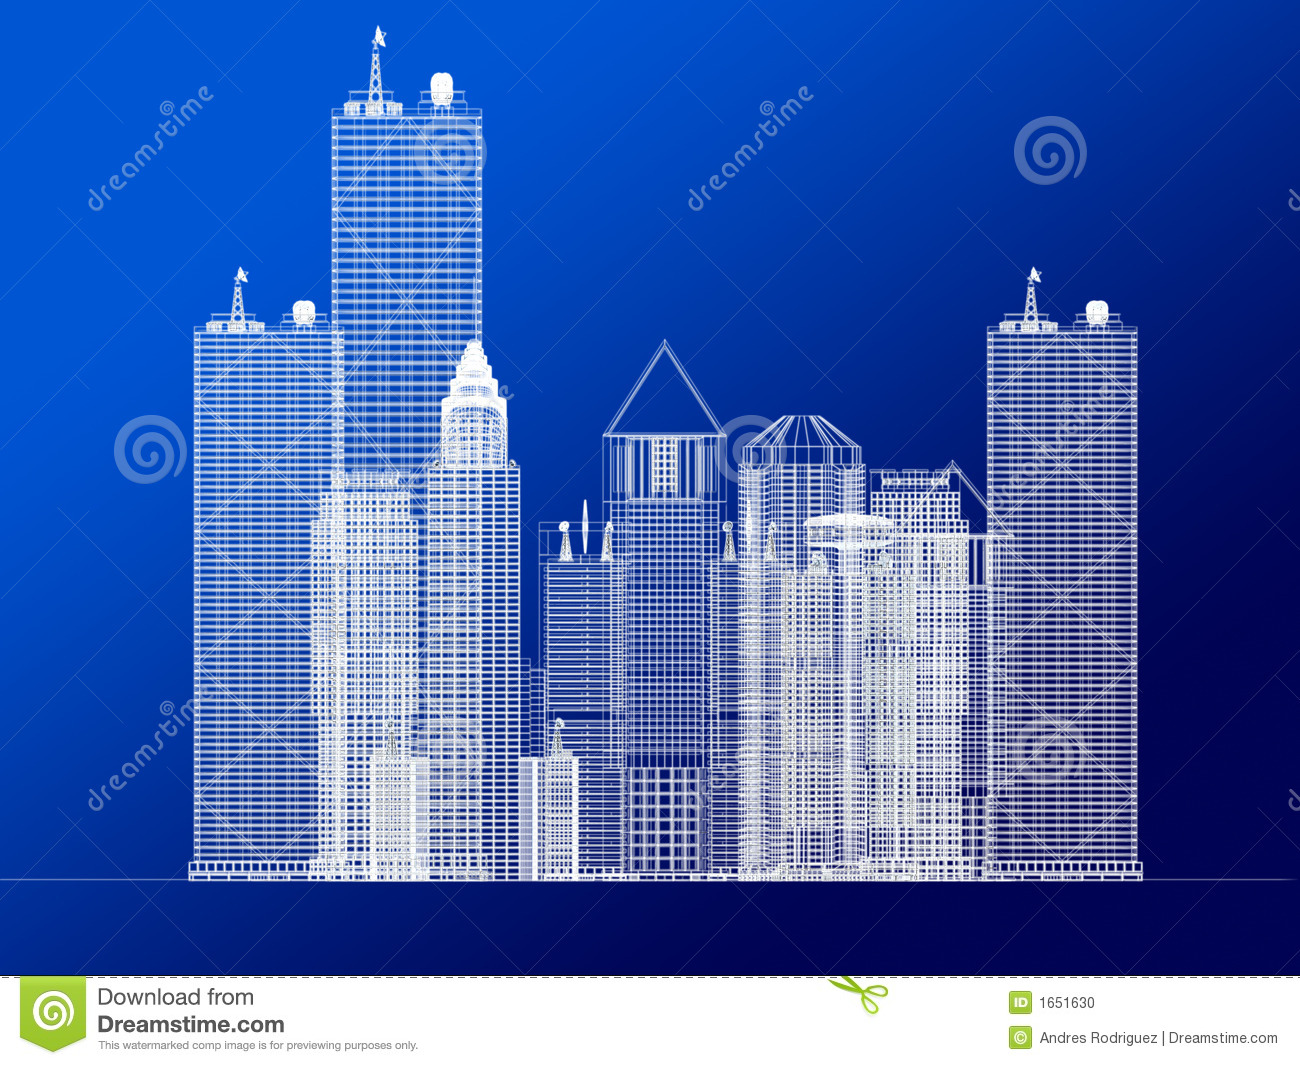 Architecture blueprint of corporate buildings stock for Architecture blueprints